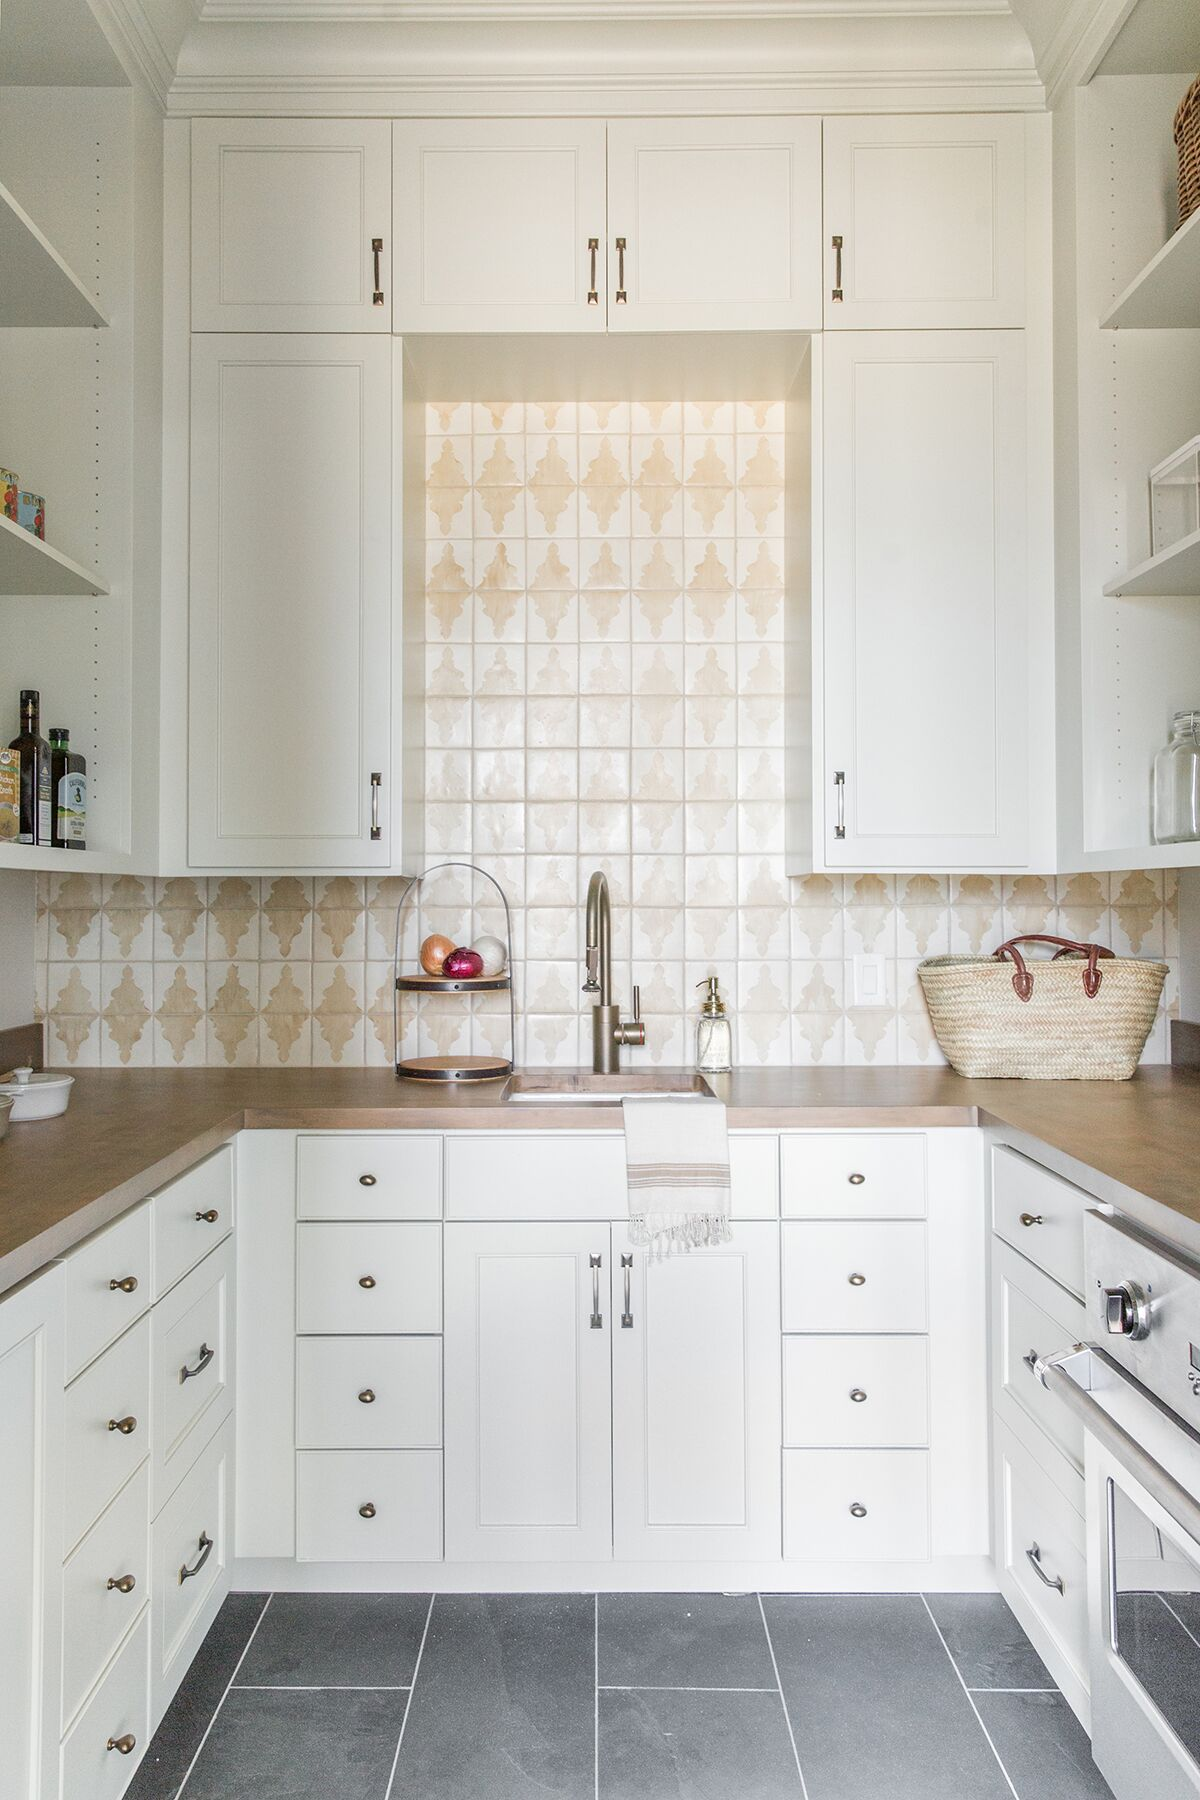 Butlers+pantry+with+with+tile+and+white+cabinetry+-+Studio+McGee+Design.jpg